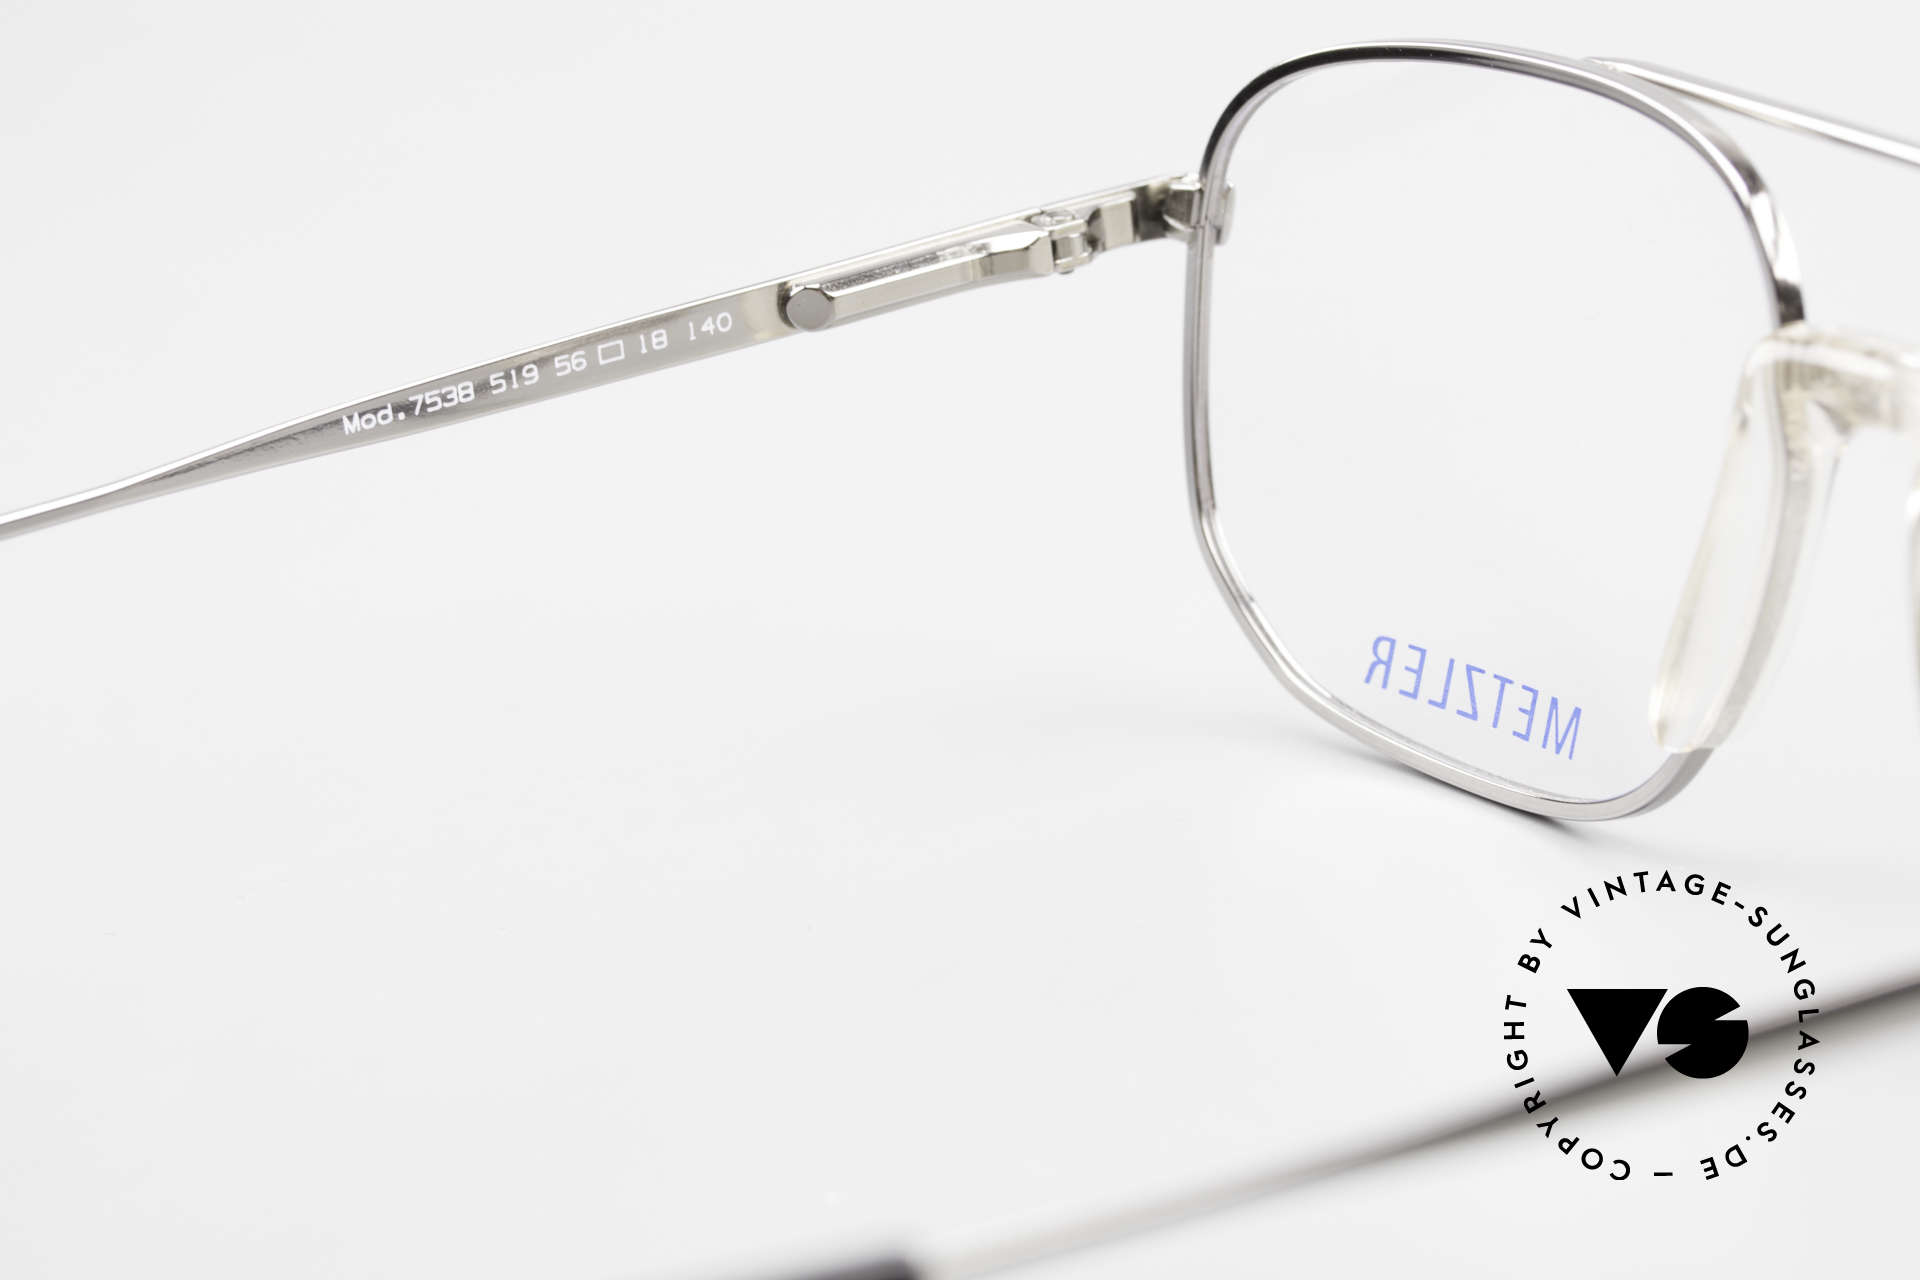 Metzler 7538 Metal Frame With Saddle Bridge, with subtle gray pattern on the frame, check pics!, Made for Men